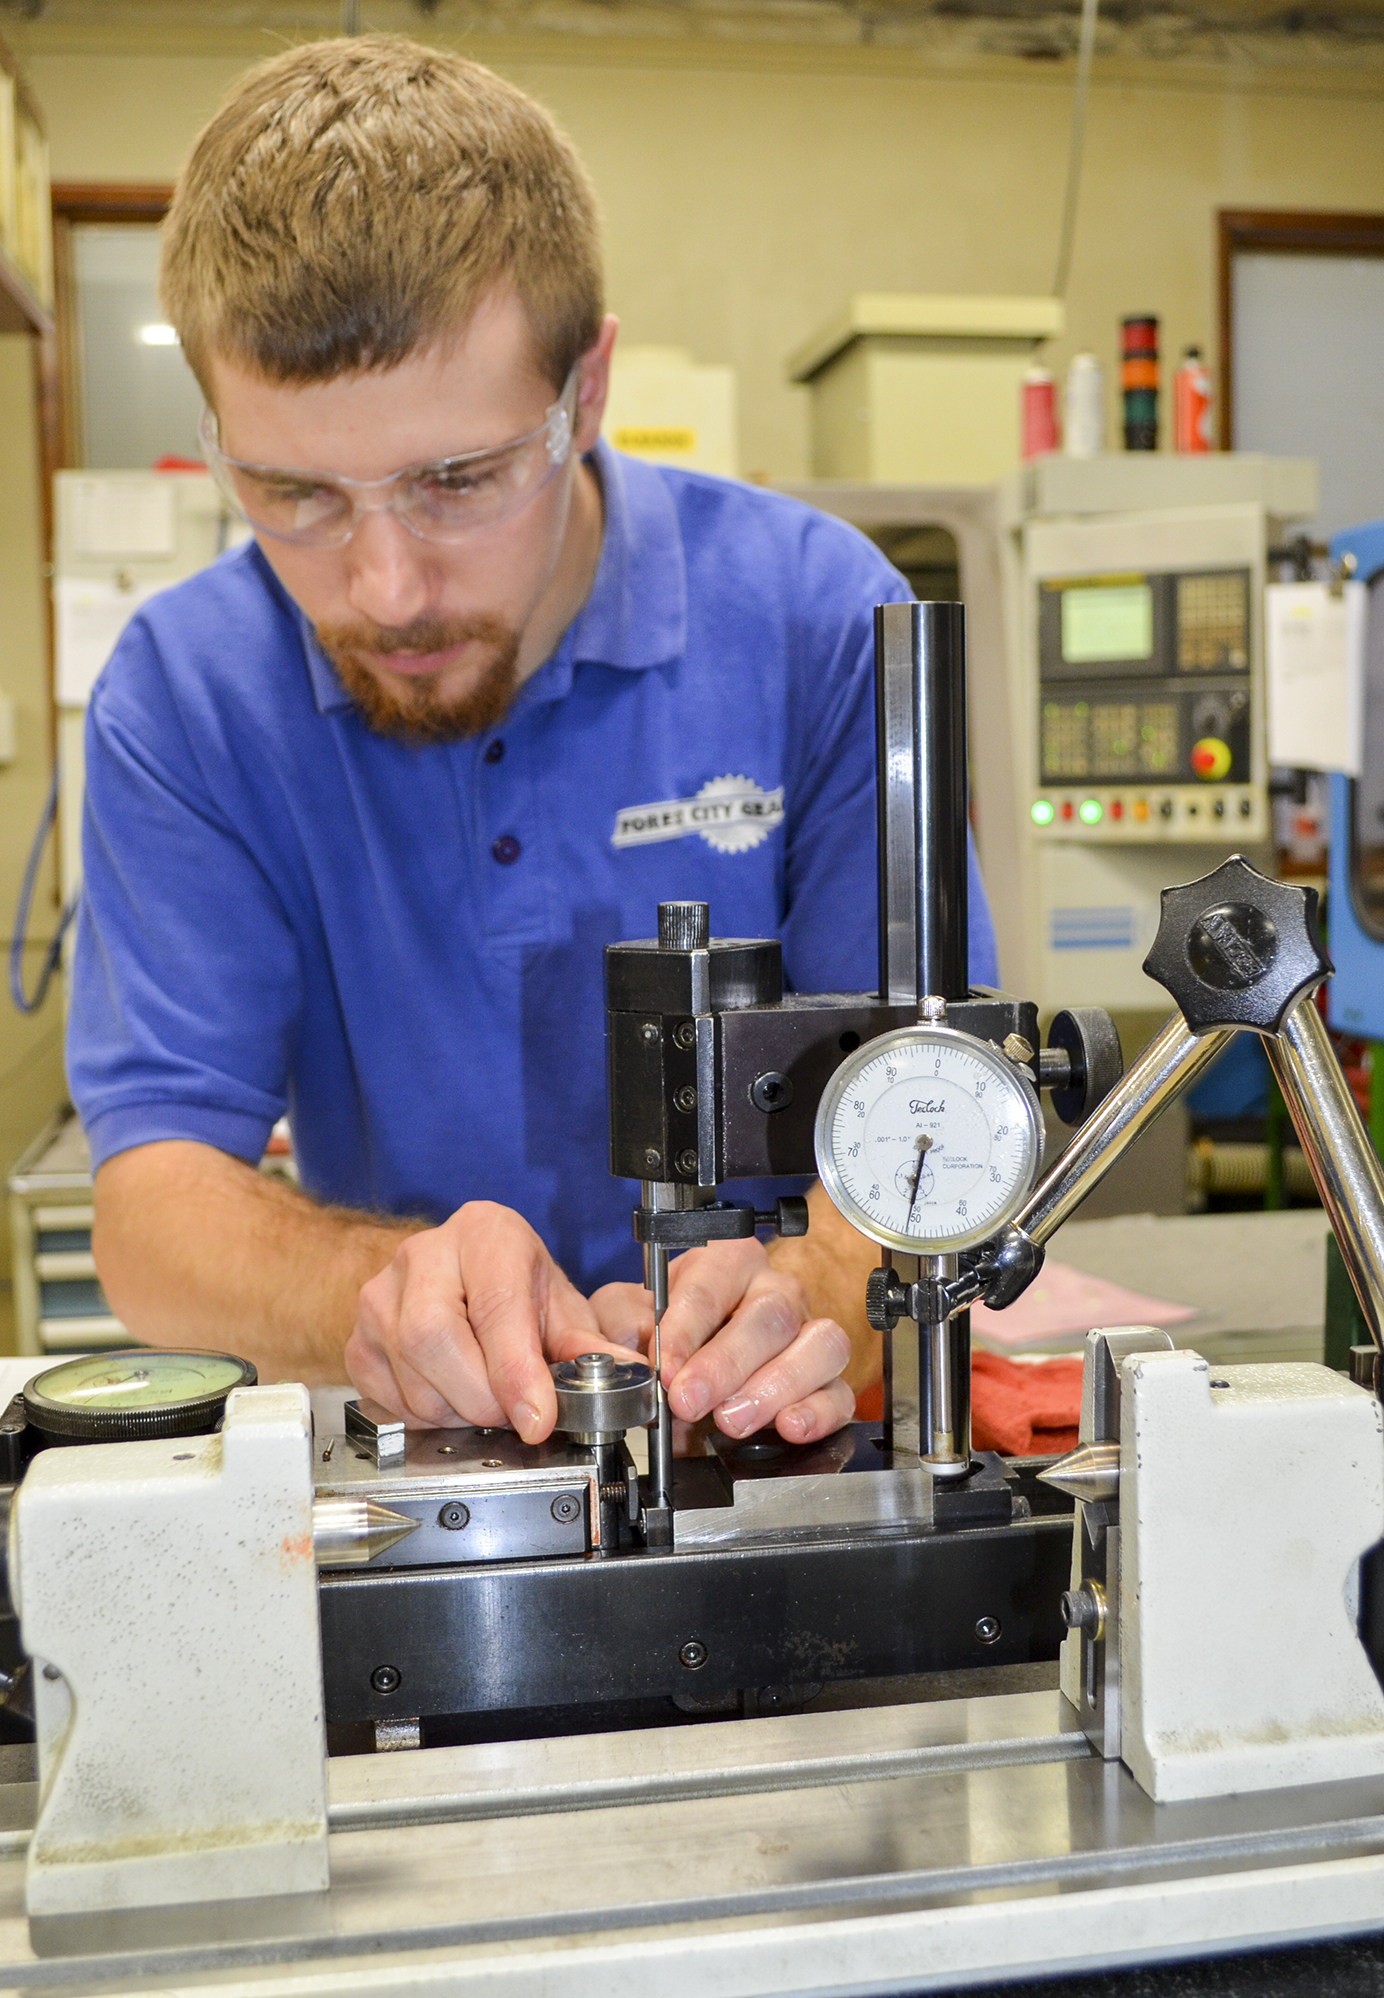 Cody Insko works on manufacturing a gear using a CNC hobby mill.